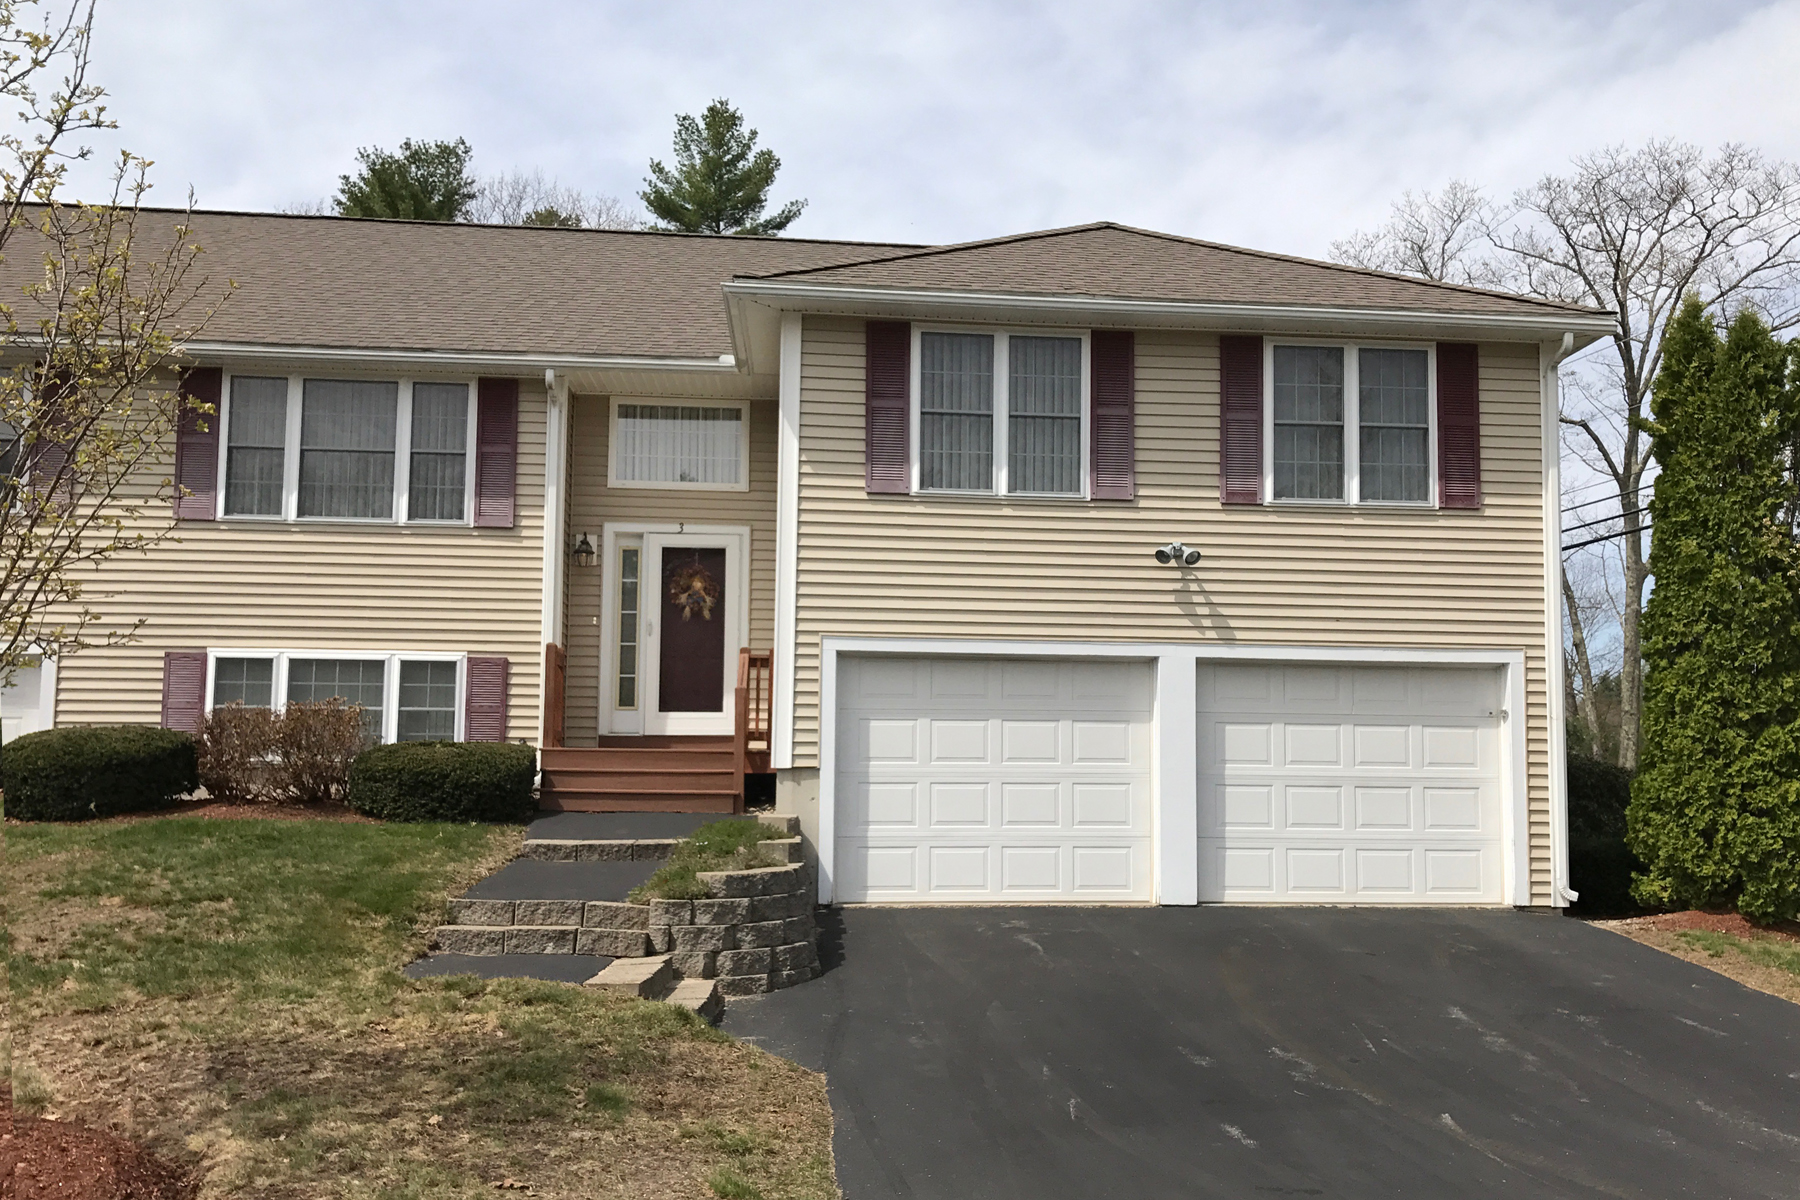 Condominium for Sale at 3 Nathaniel Drive 1, Raymond 3 Nathaniel Dr 1 Raymond, New Hampshire, 03077 United States